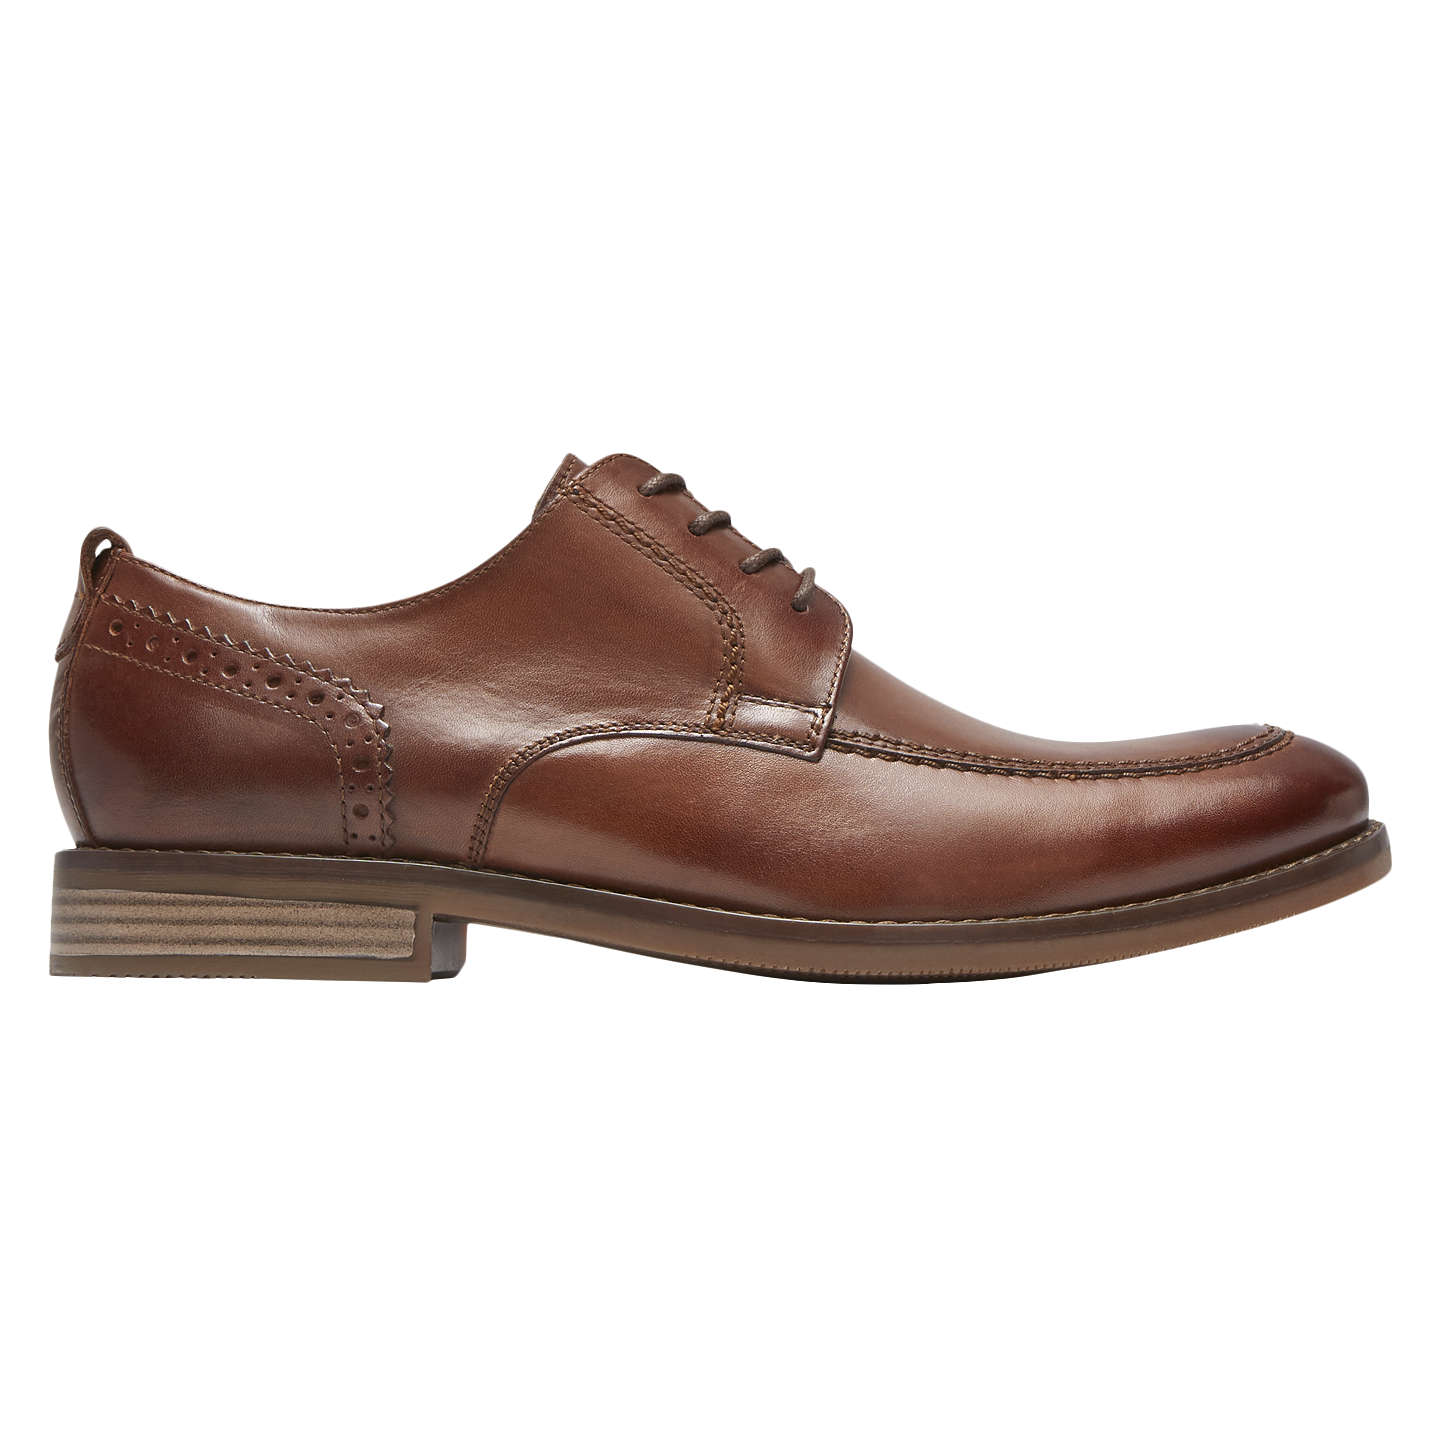 BuyRockport Wynstin Derby Shoes, Brown, 7 Online at johnlewis.com ...